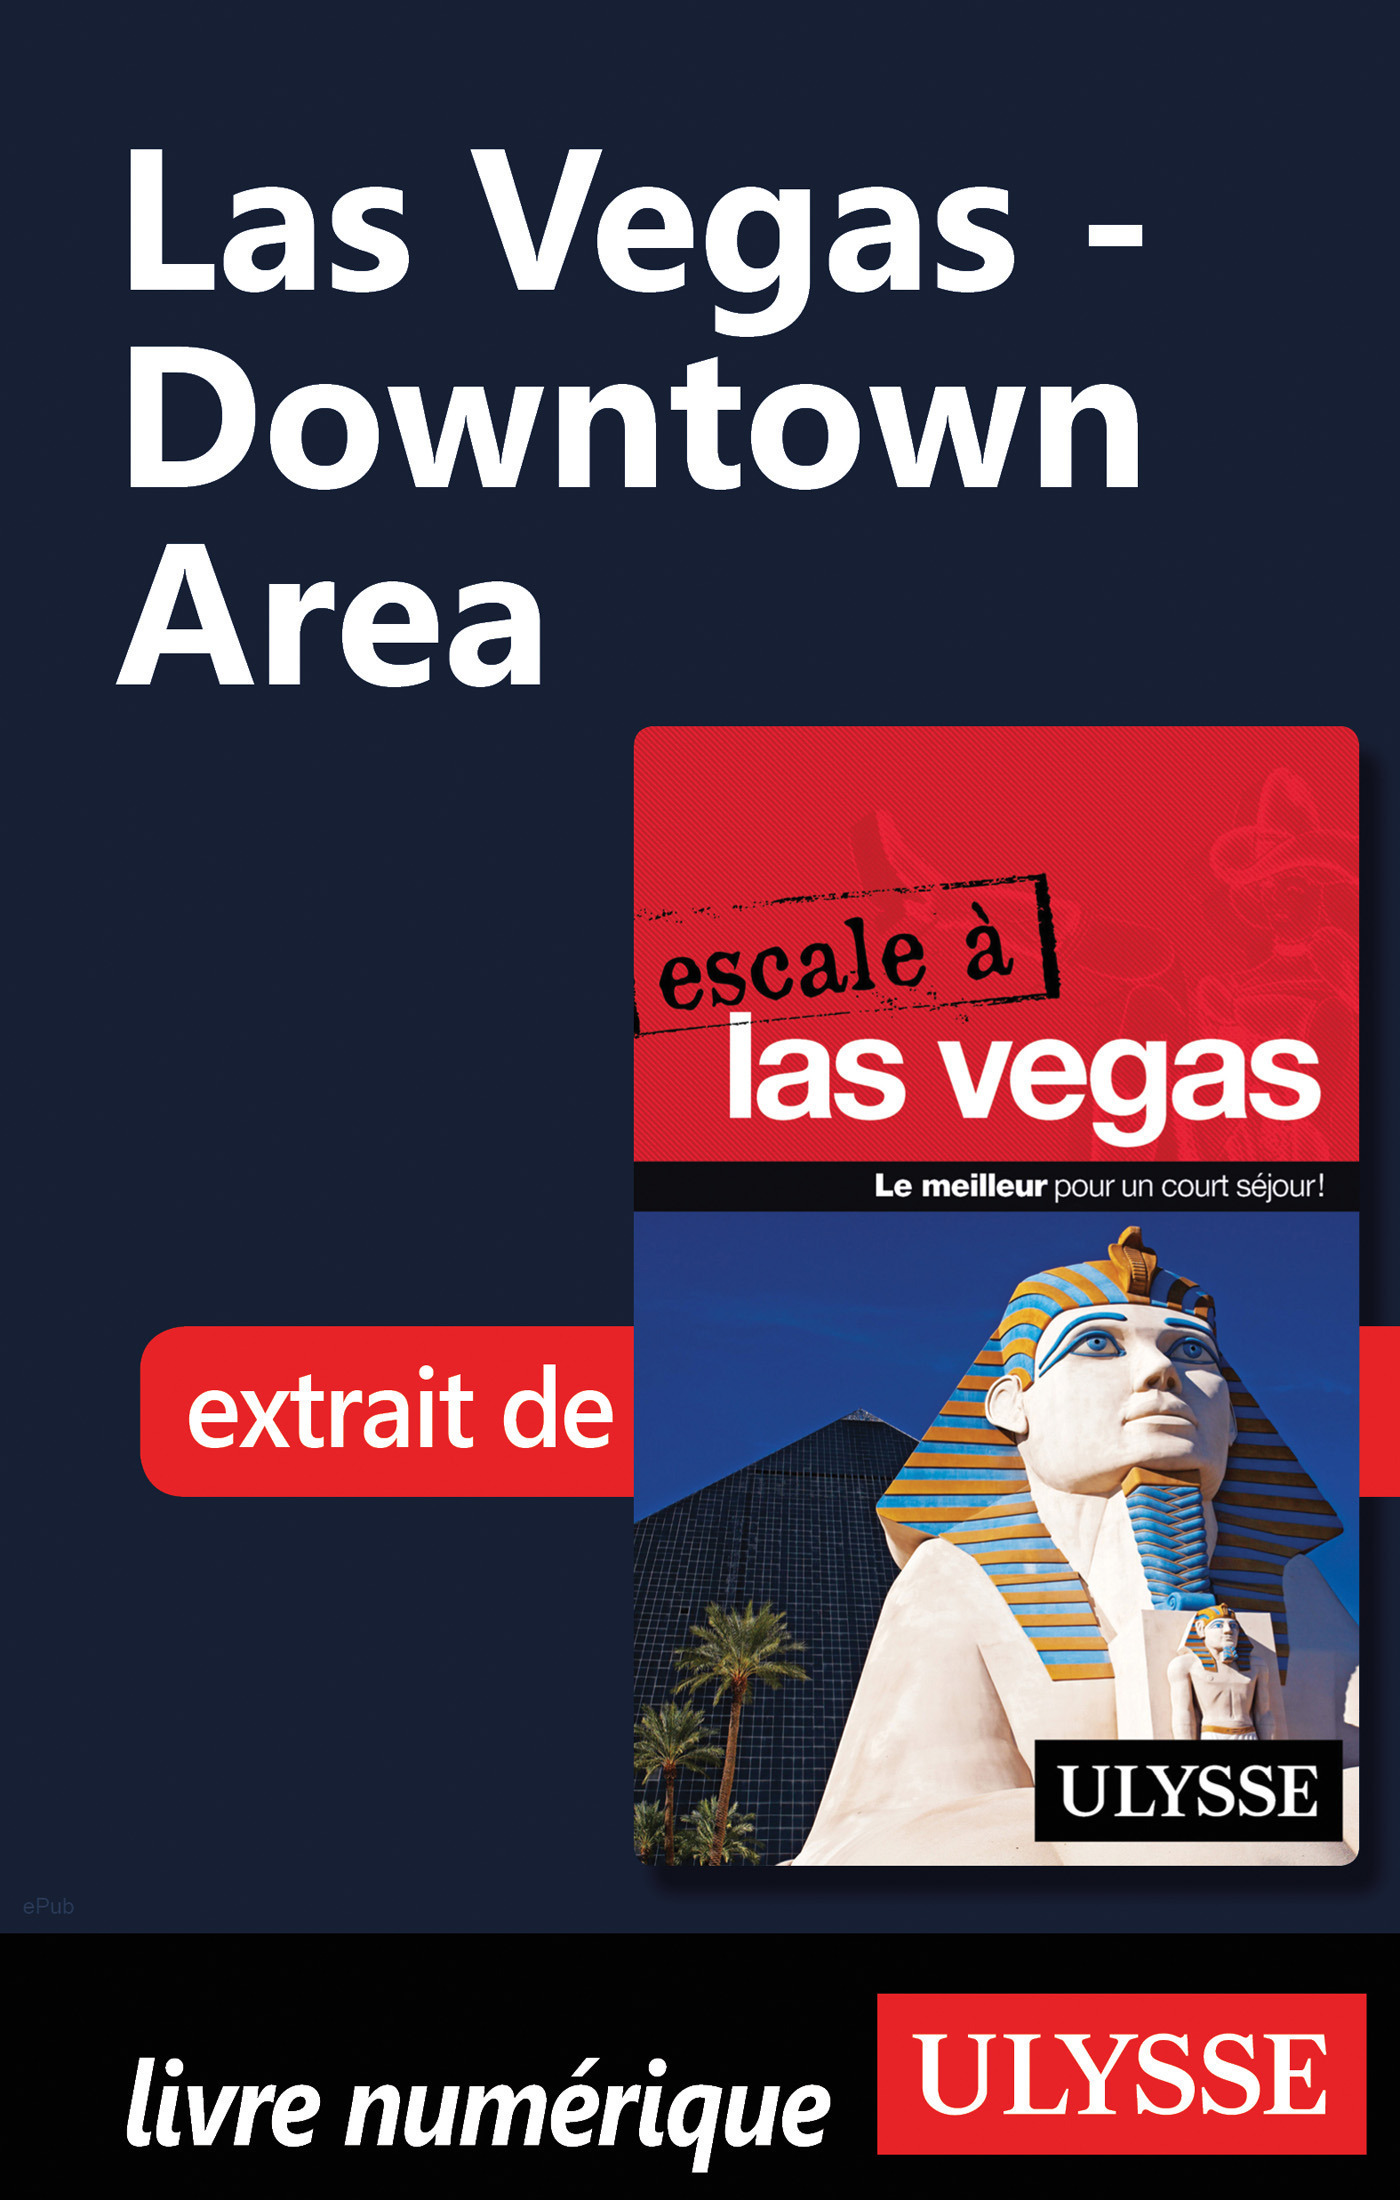 Las Vegas - Downtown Area